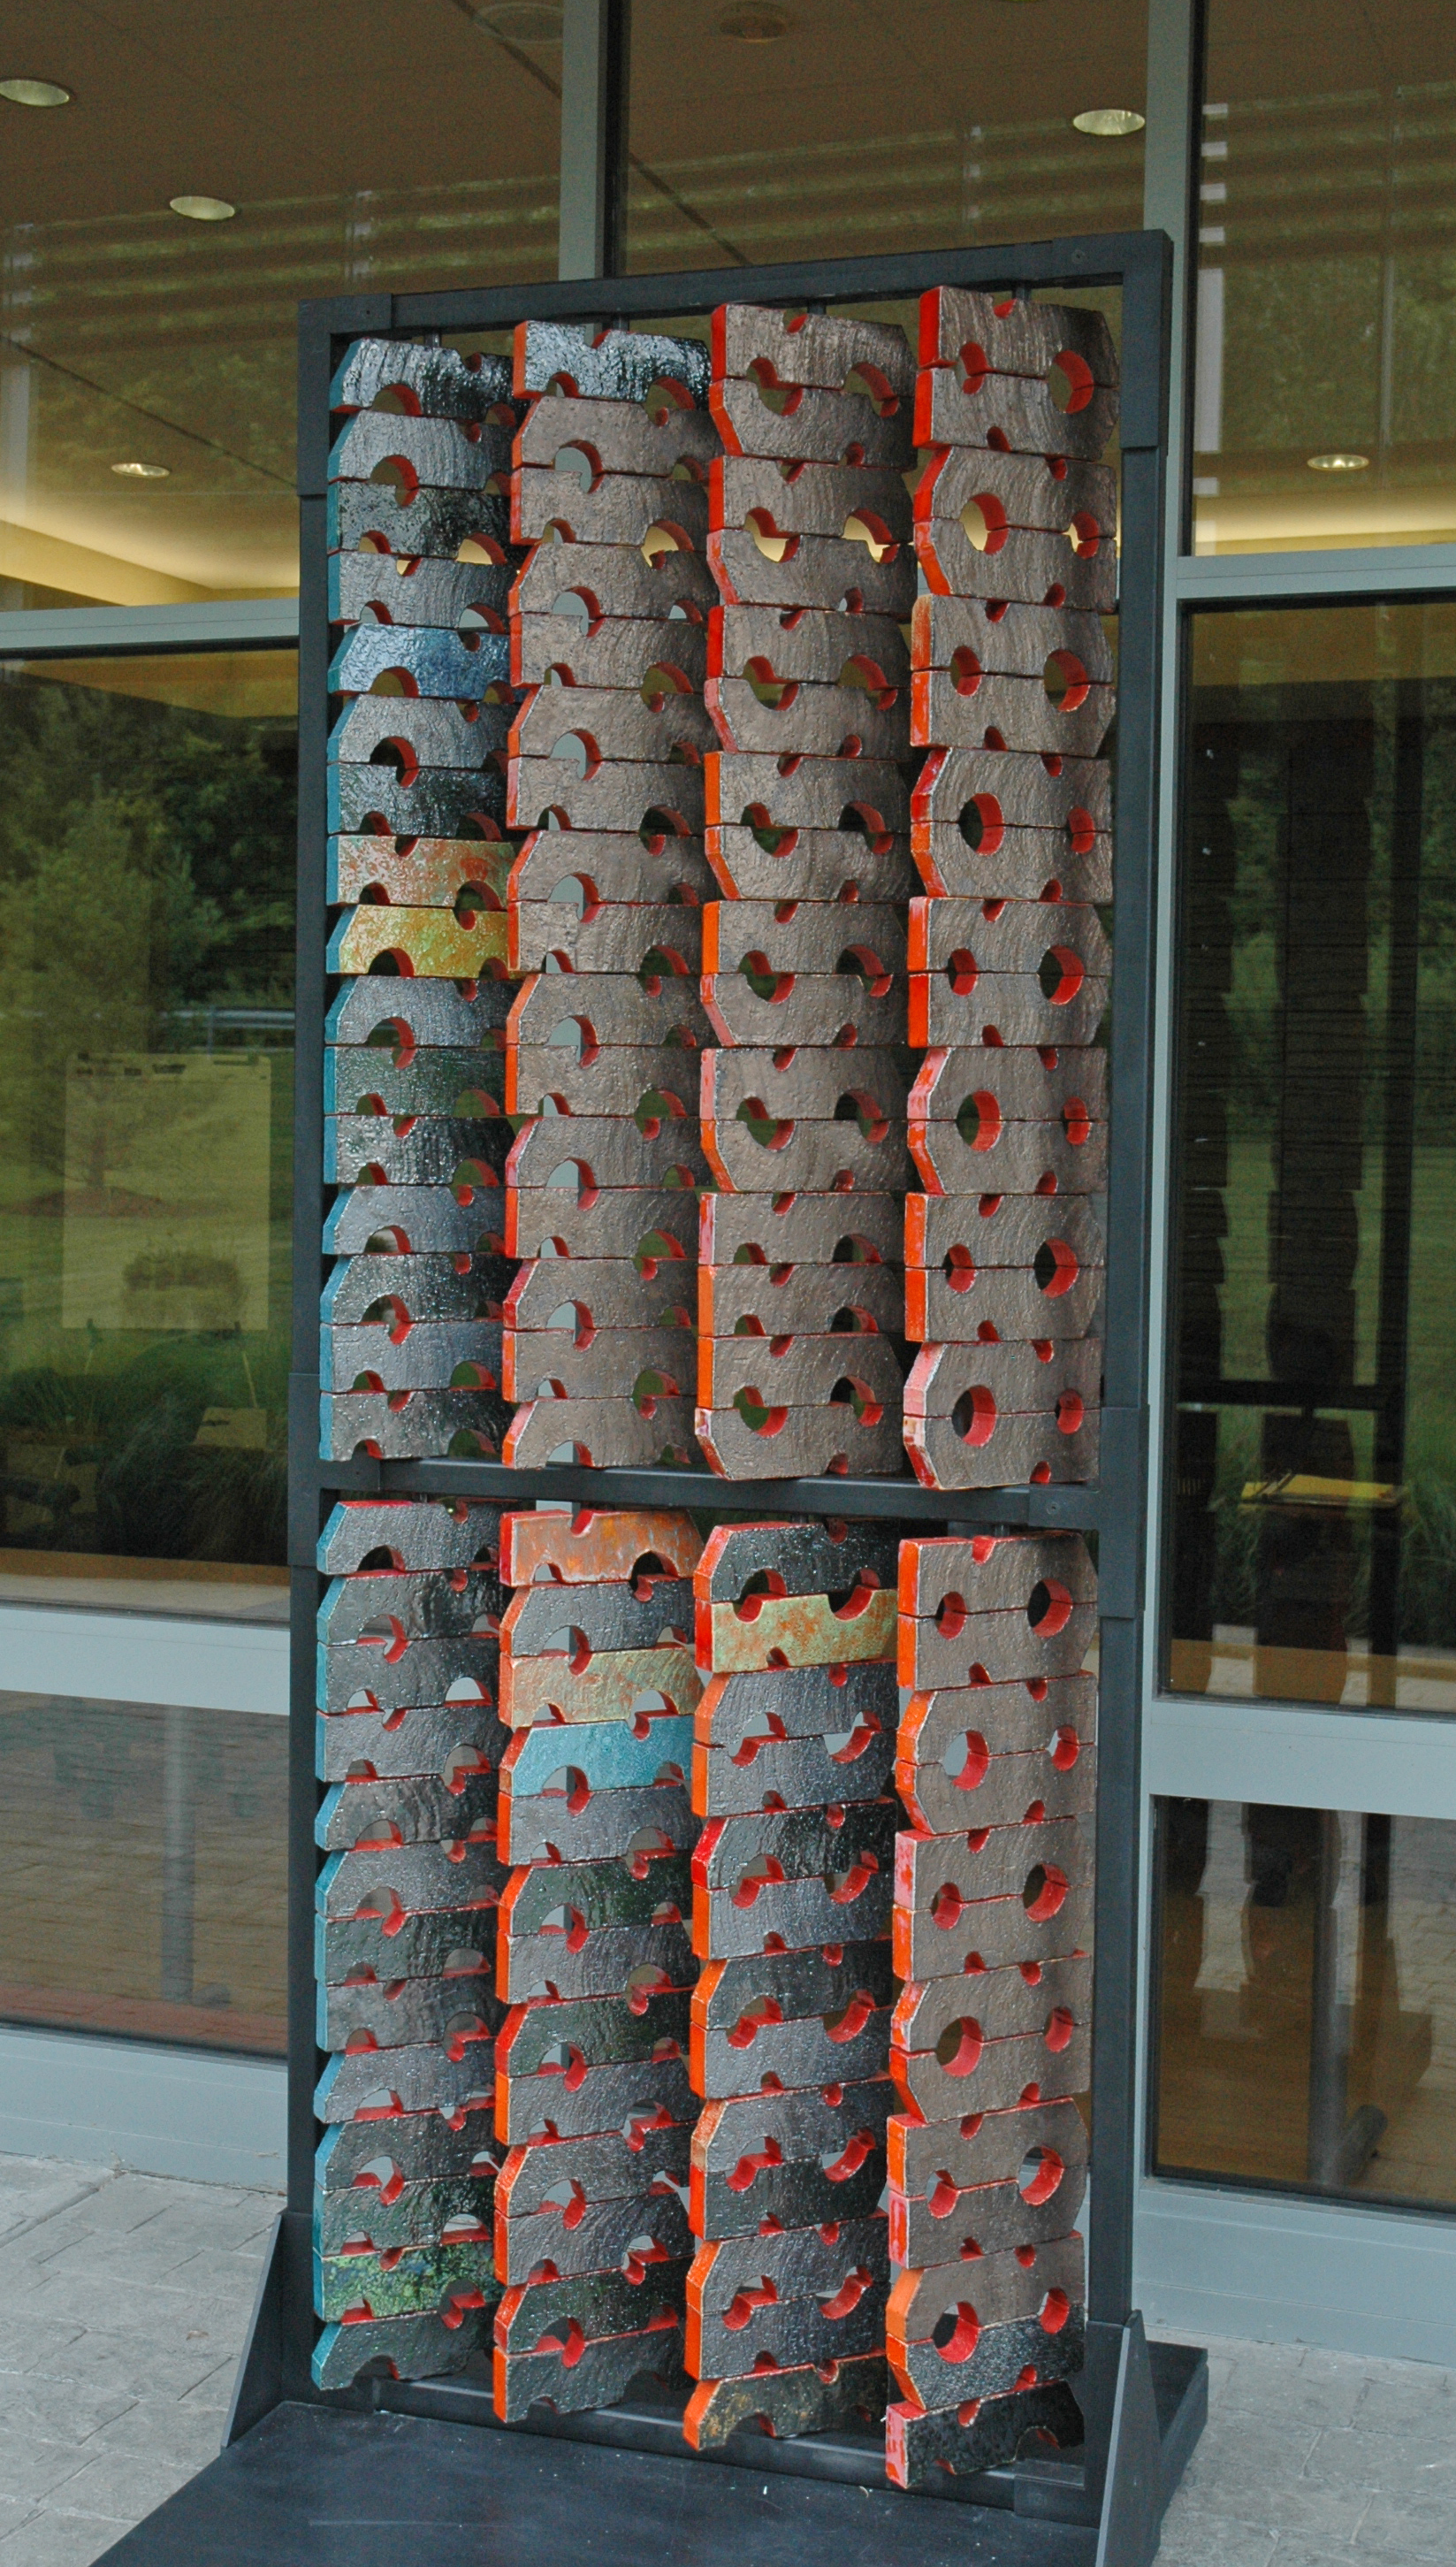 Susan Tunick and Christine Jetten. Threaded Bricks, 2014. Extruded, glazed bricks on a steel frame, 90 x 39 x 2 in. Photograph by author.